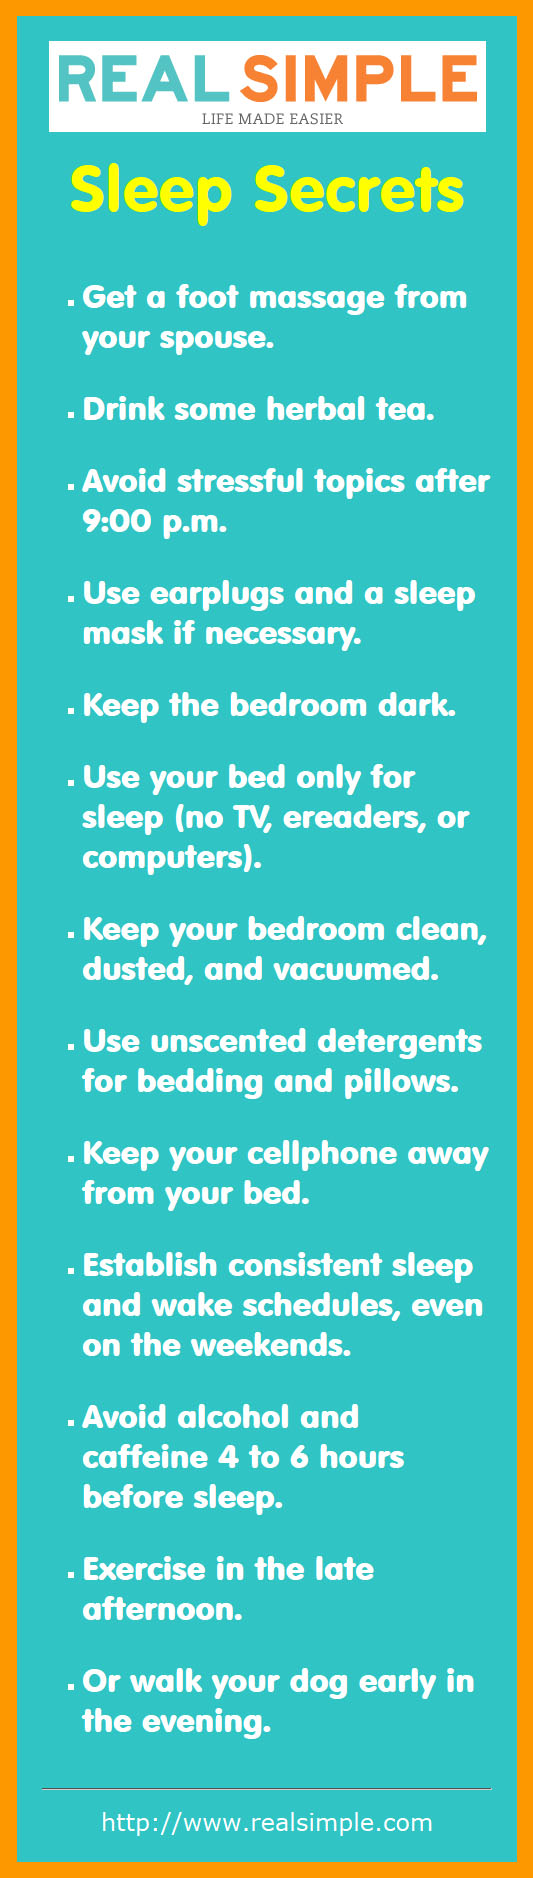 Real Simple Sleep Secrets